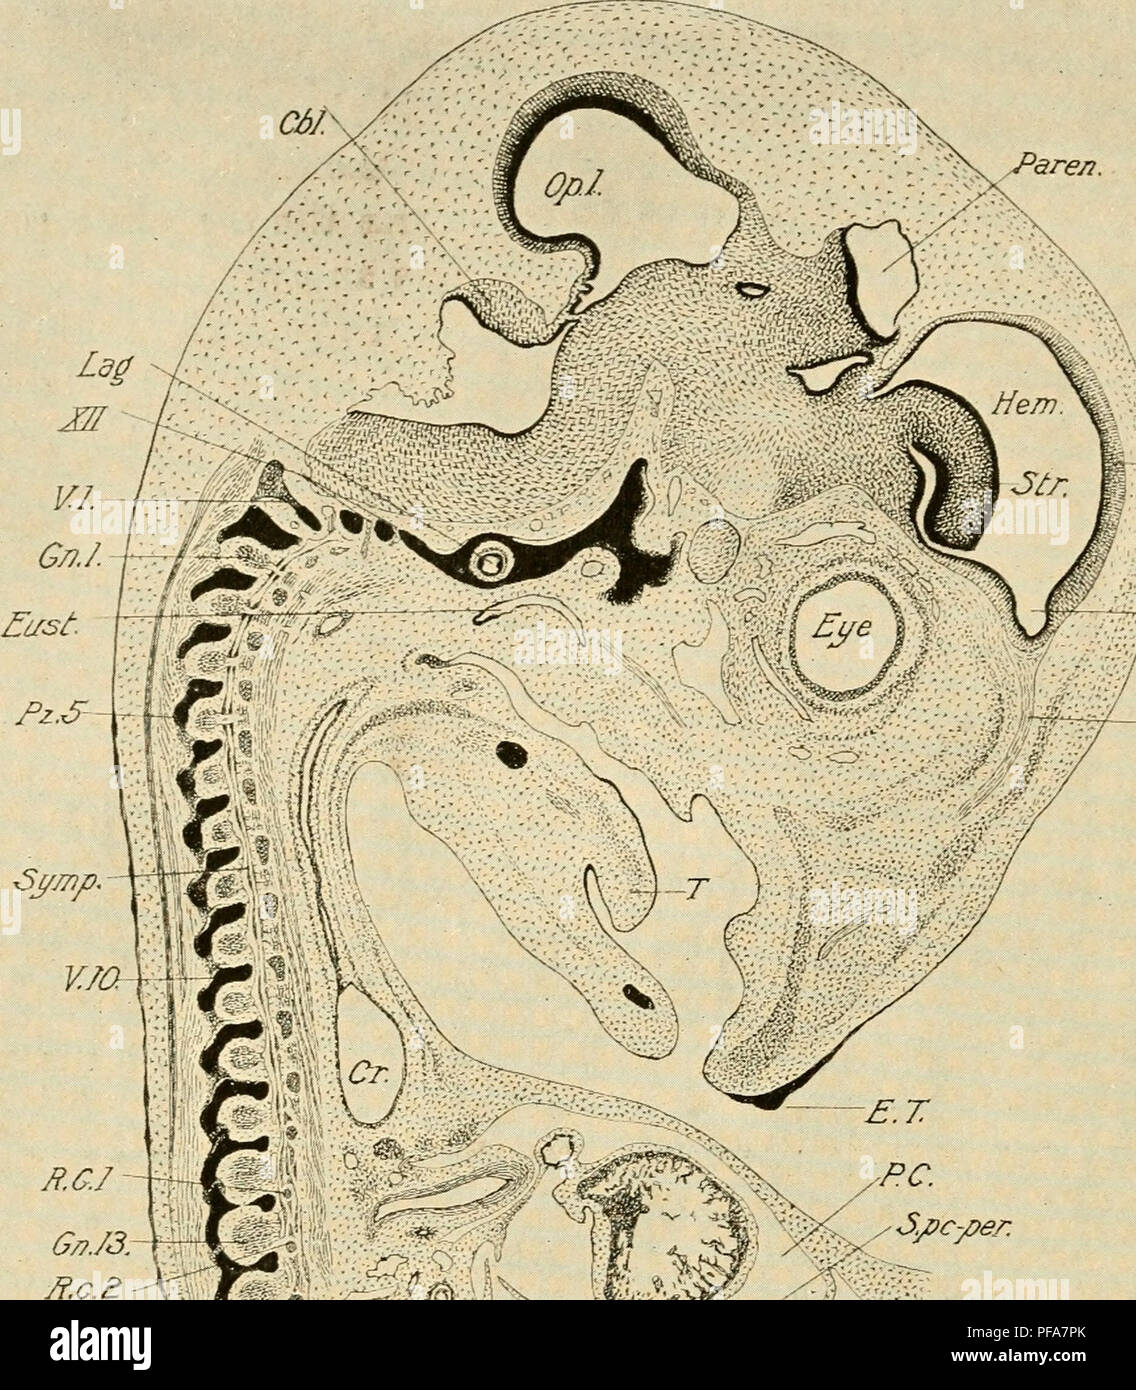 . The development of the chick; an introduction to embryology. Birds -- Embryology. 250 THE DEVELOPMENT OF THE CHICK. -M. OJf.l. Olf.N. / /yy# ) // X ^'30 Fig. 150. — Lateral sagittal section of an embryo of 8 days. Right side of the body. All. N., Neck of the allantois. Cbl., cerebelkim. Cr., Crop. E. T., Egg. Please note that these images are extracted from scanned page images that may have been digitally enhanced for readability - coloration and appearance of these illustrations may not perfectly resemble the original work.. Lillie, Frank Rattray, 1870-1947. New York, Holt - Stock Image